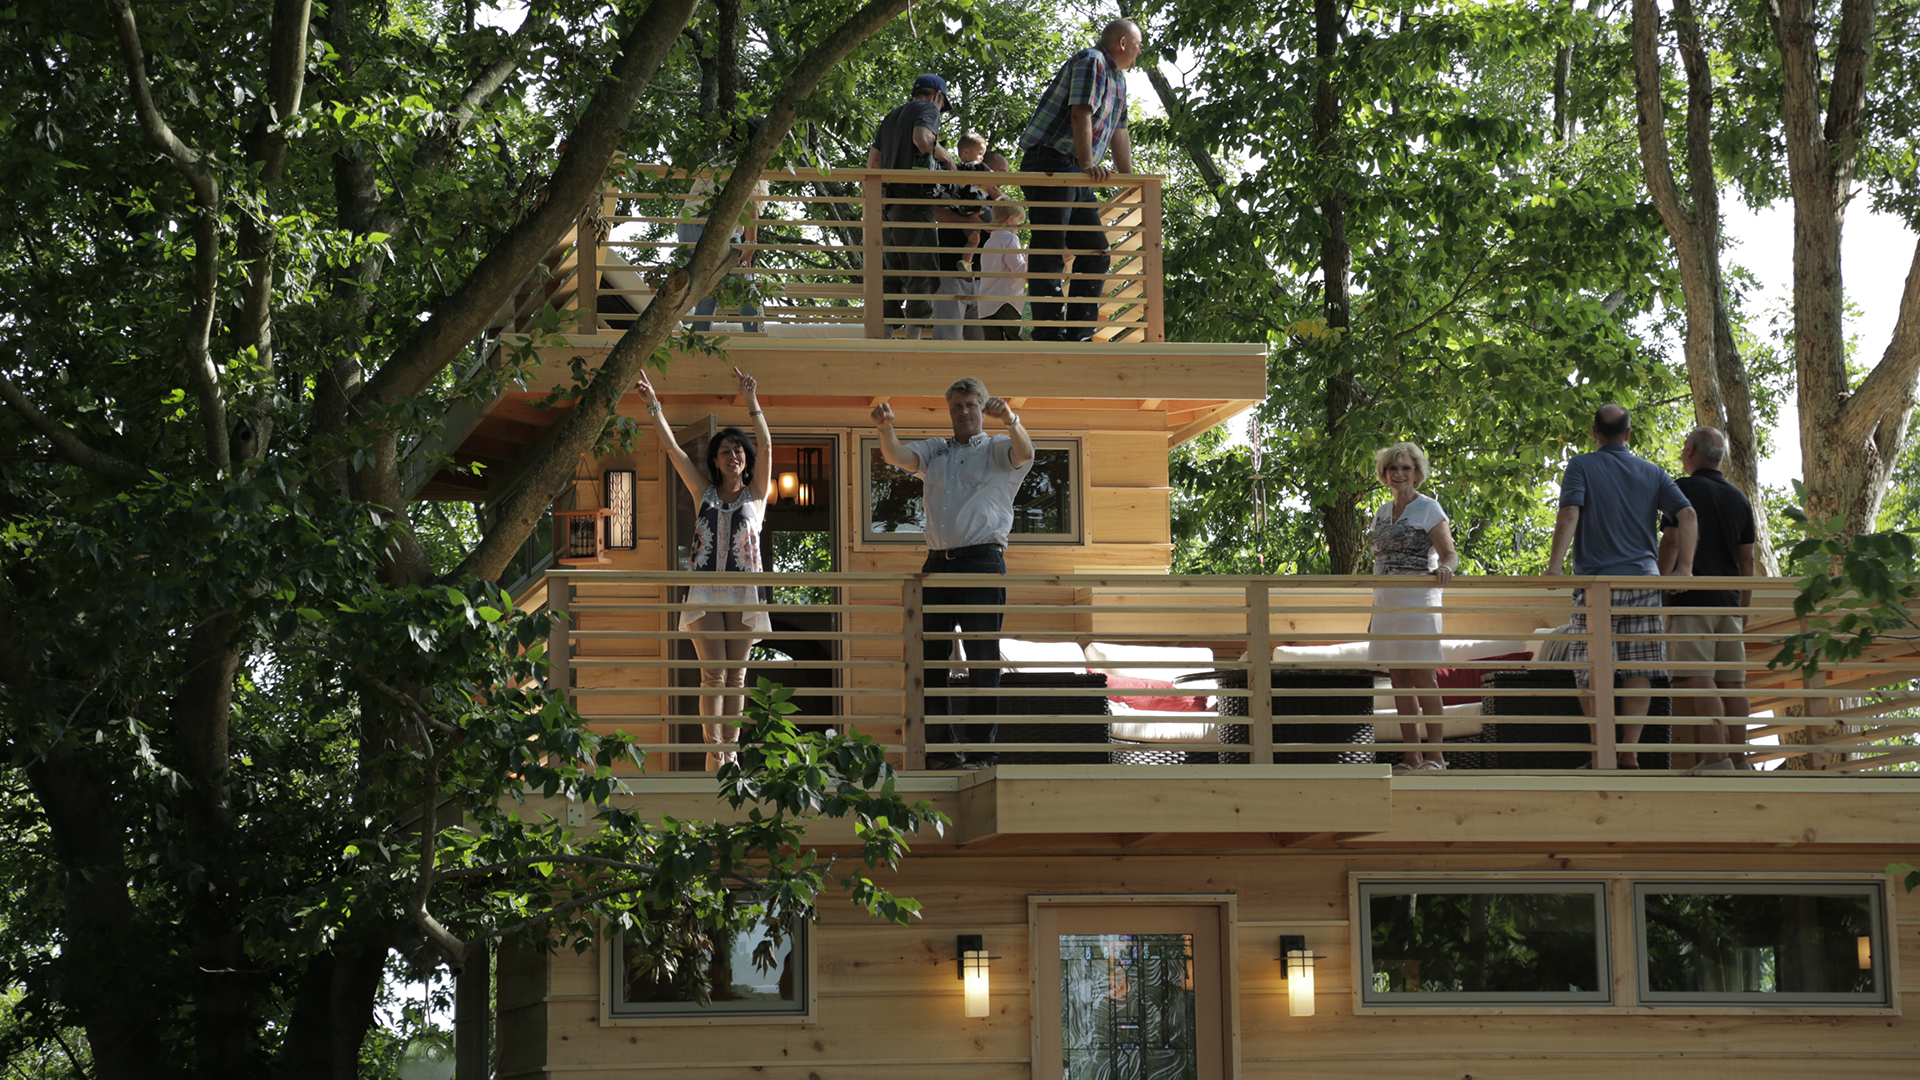 treehouse masters frank lloyd wright inspired treehouse todaycom - Treehouse Masters Tree Houses Inside